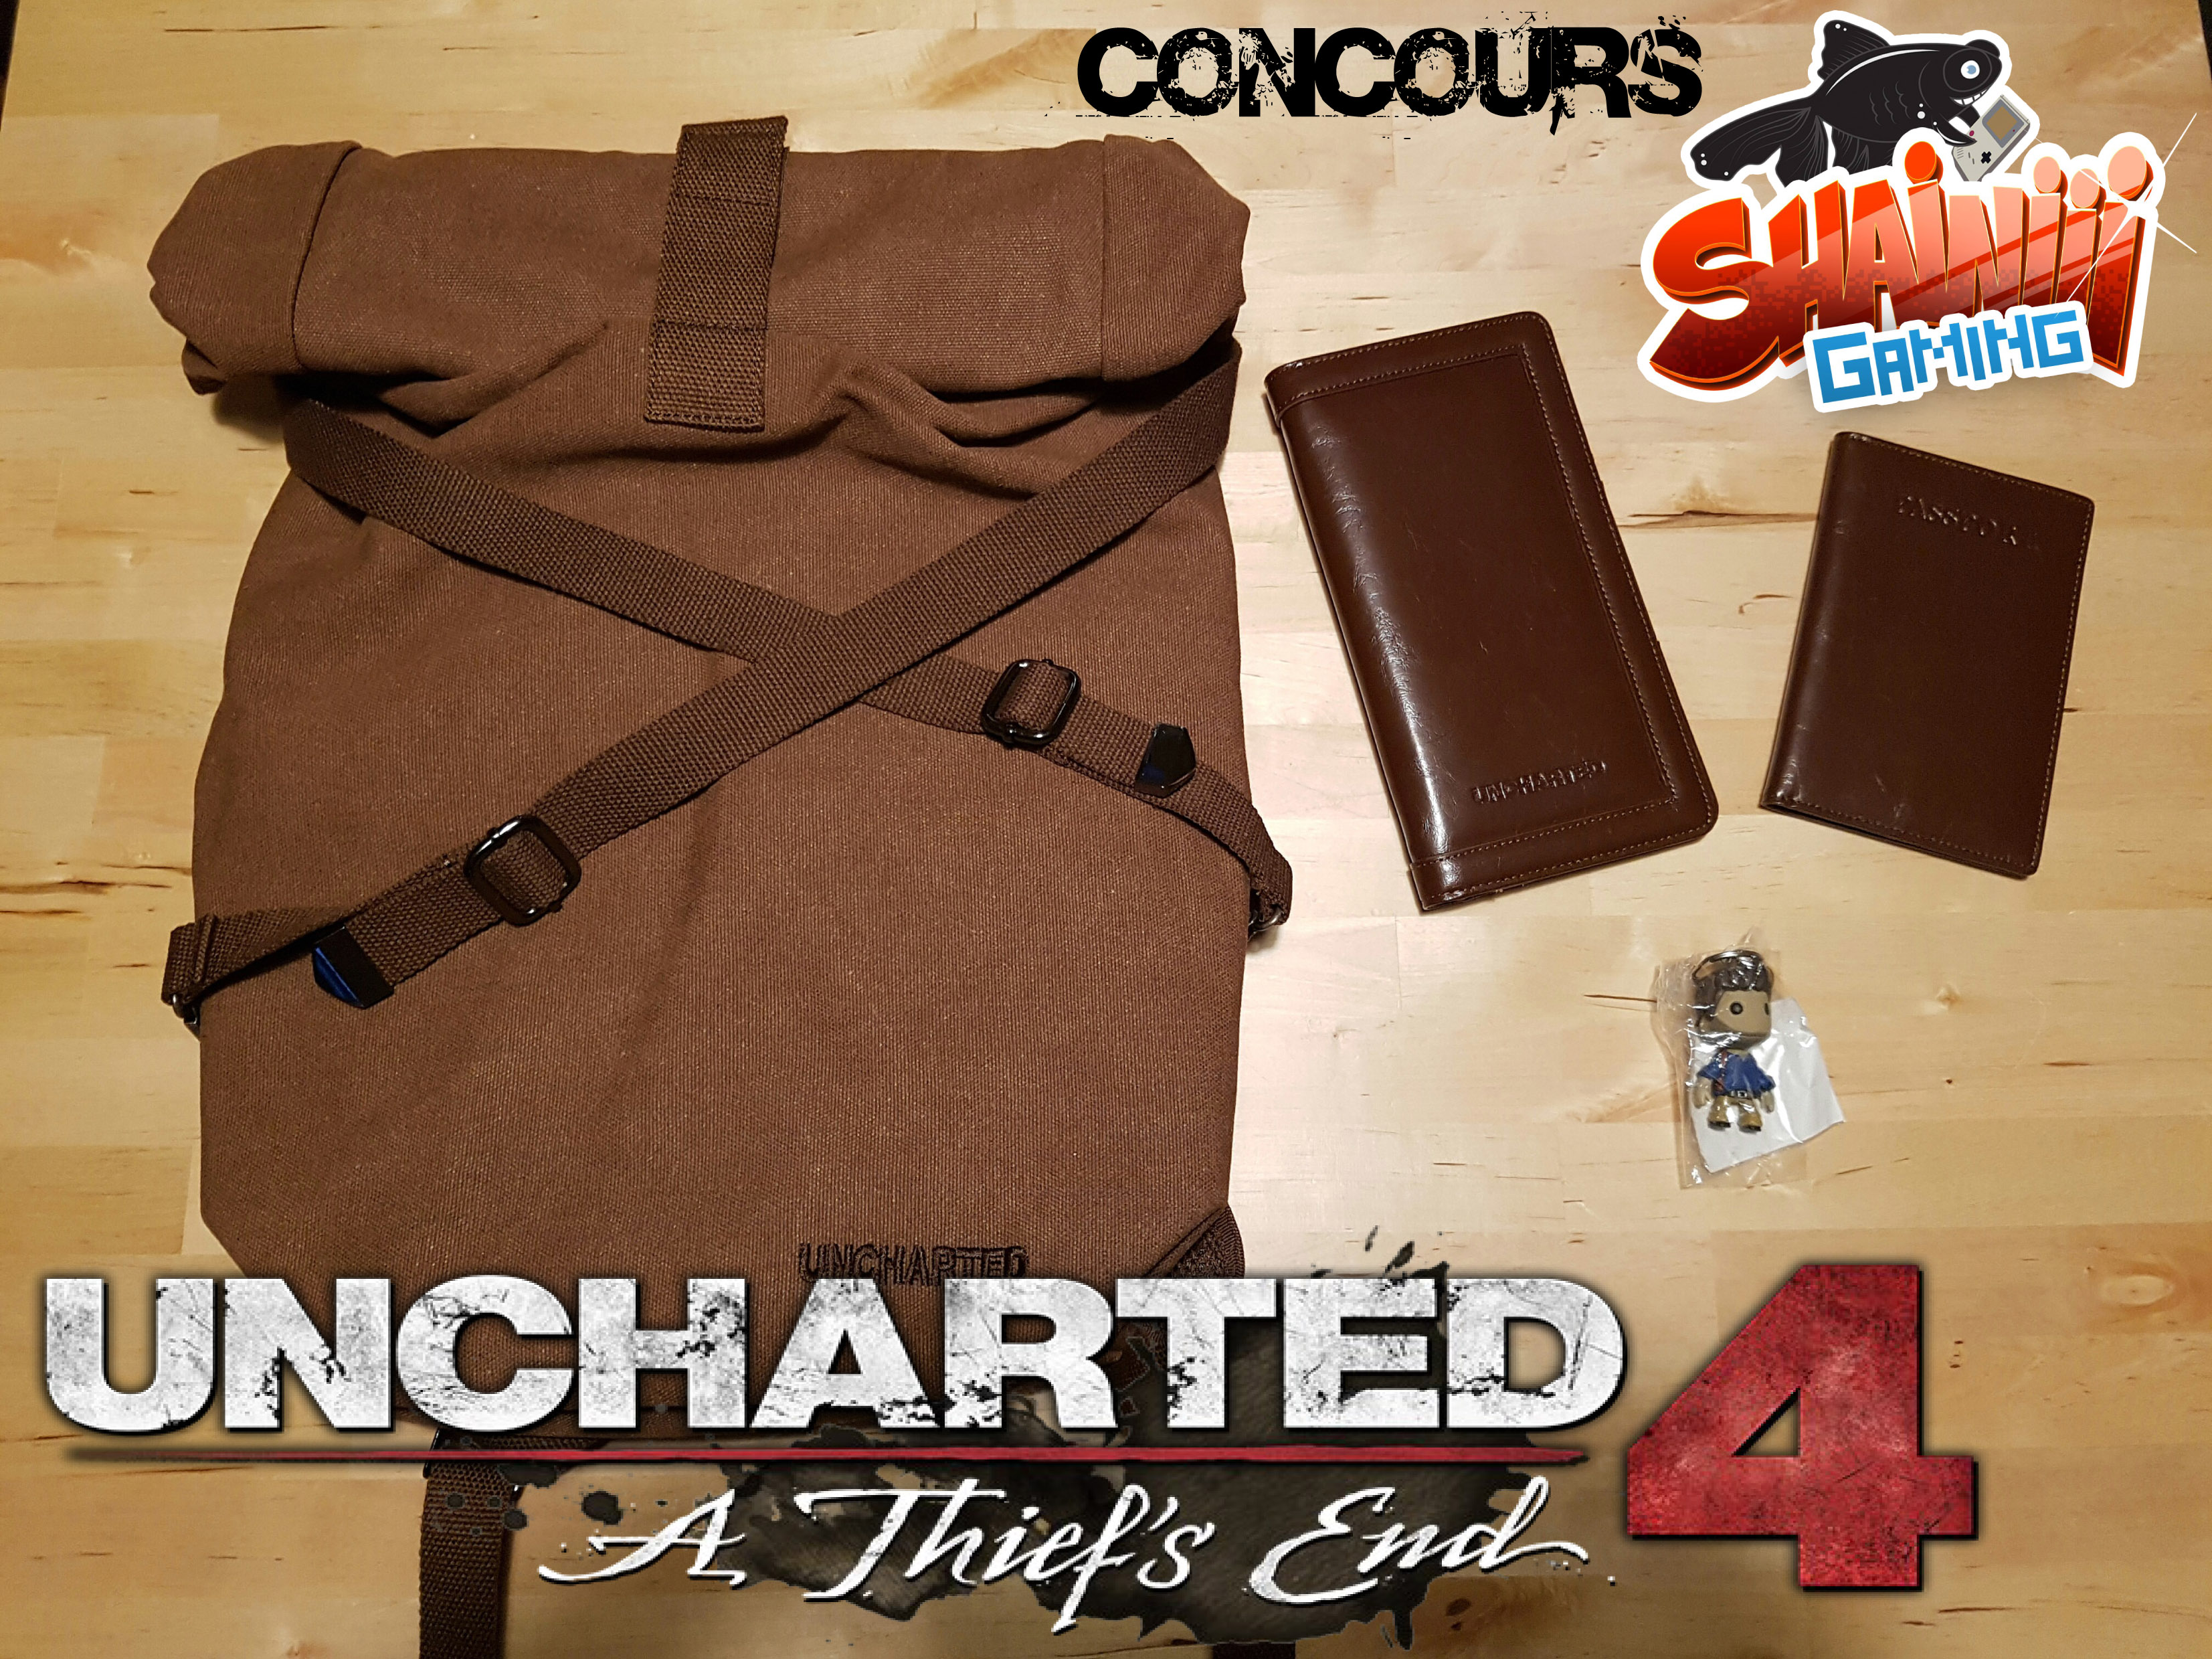 Concours Uncharted 4